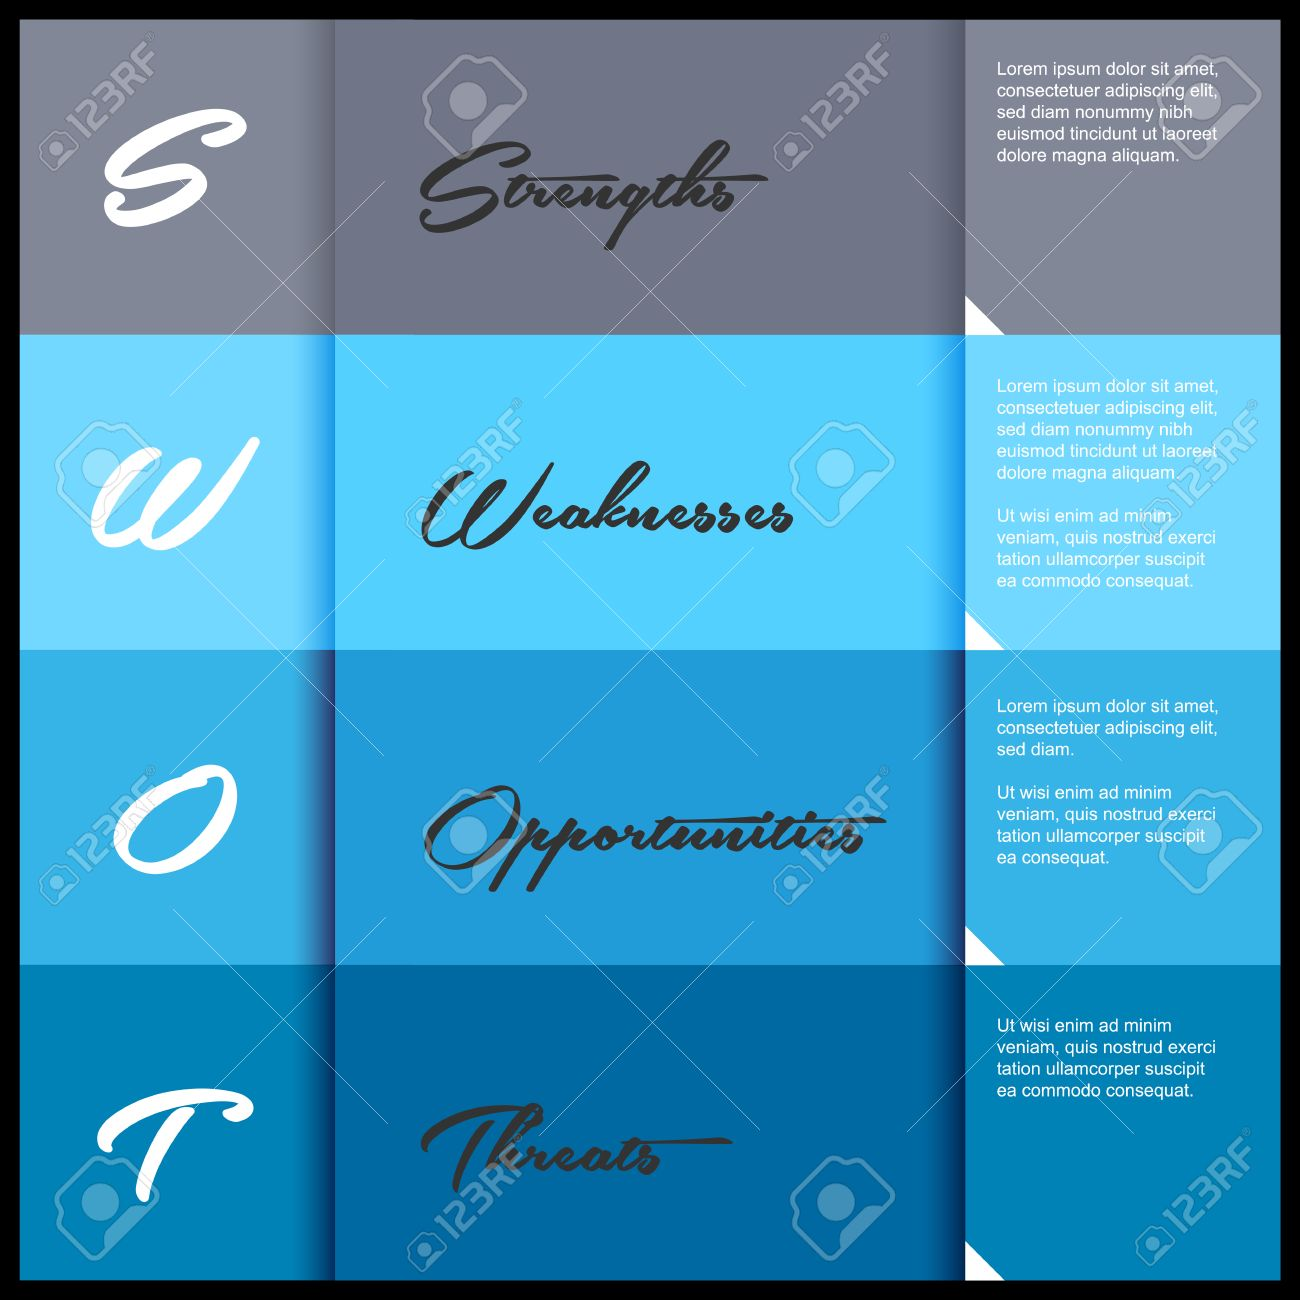 swot strengths weaknesses opportunities threats business swot strengths weaknesses opportunities threats business strategy mind map concept for presentations stock